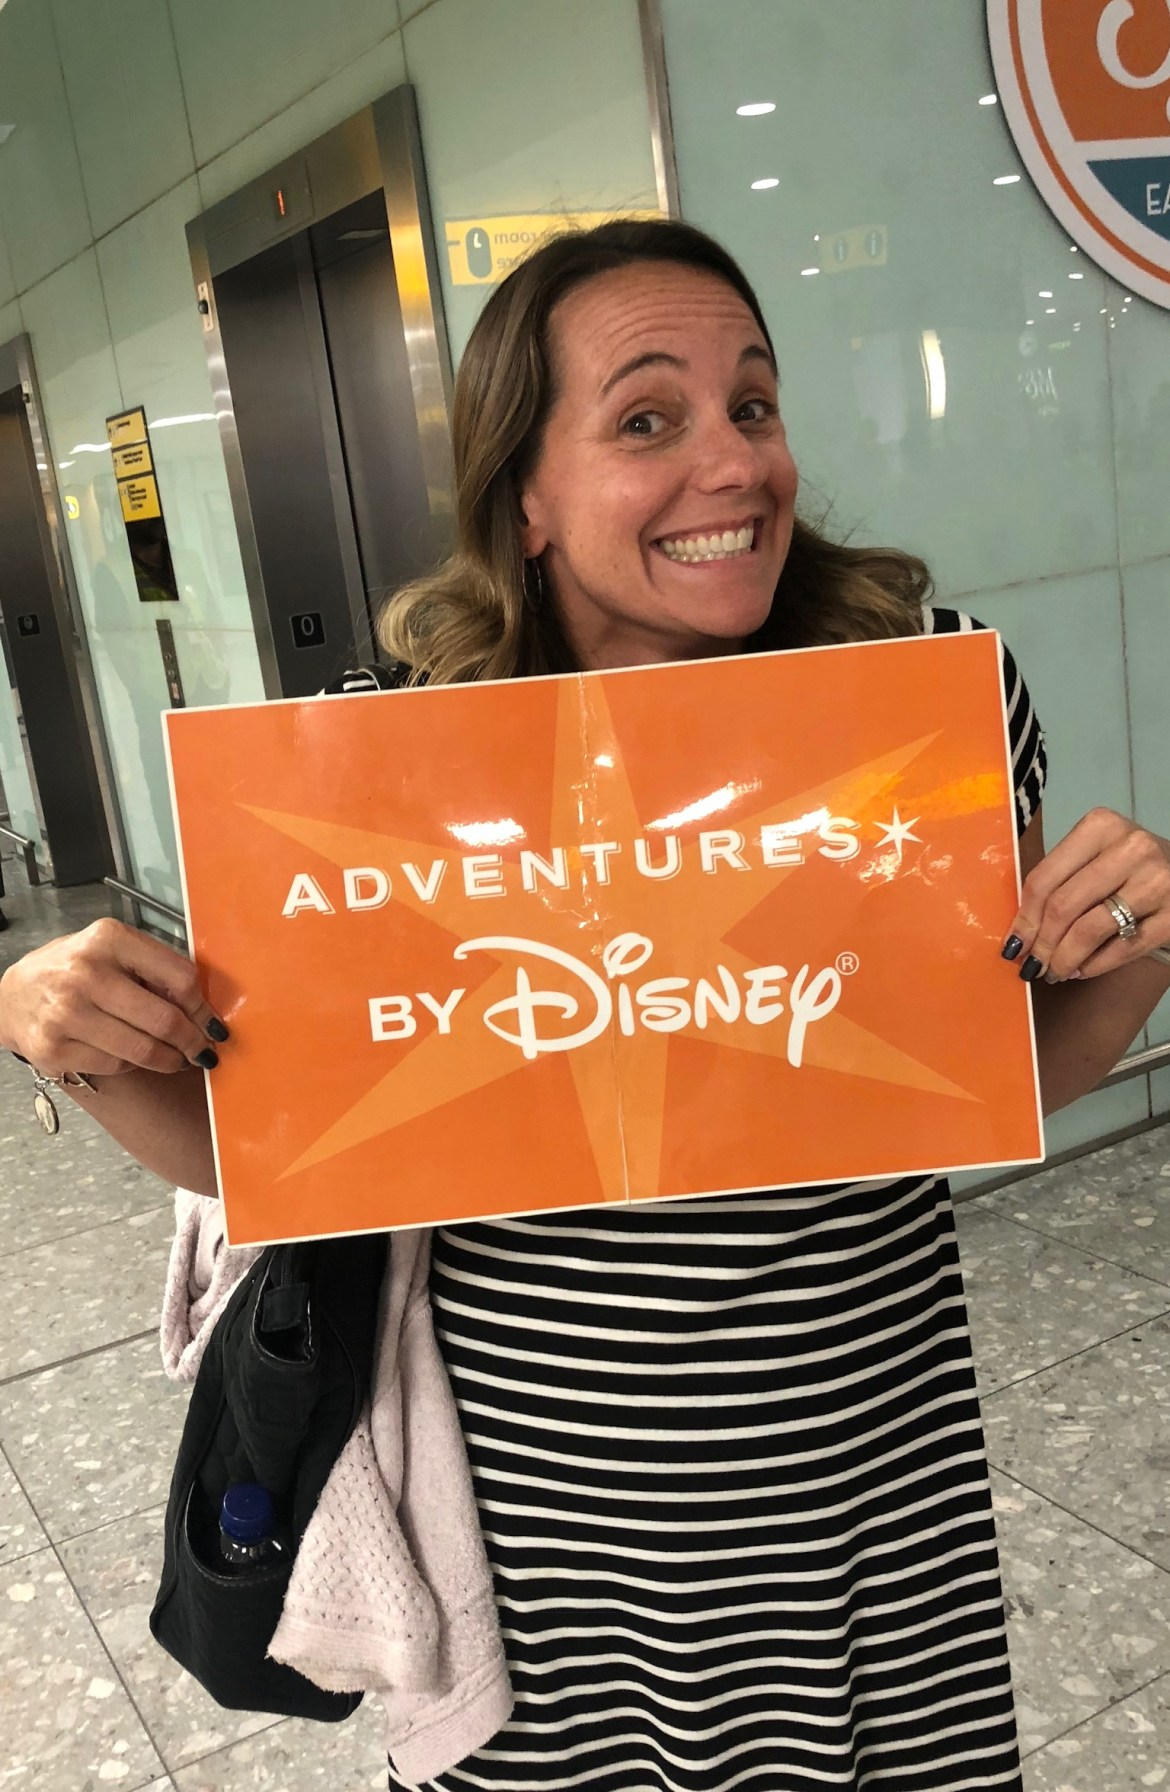 Why Your Next Disney Trip should be Adventures by Disney